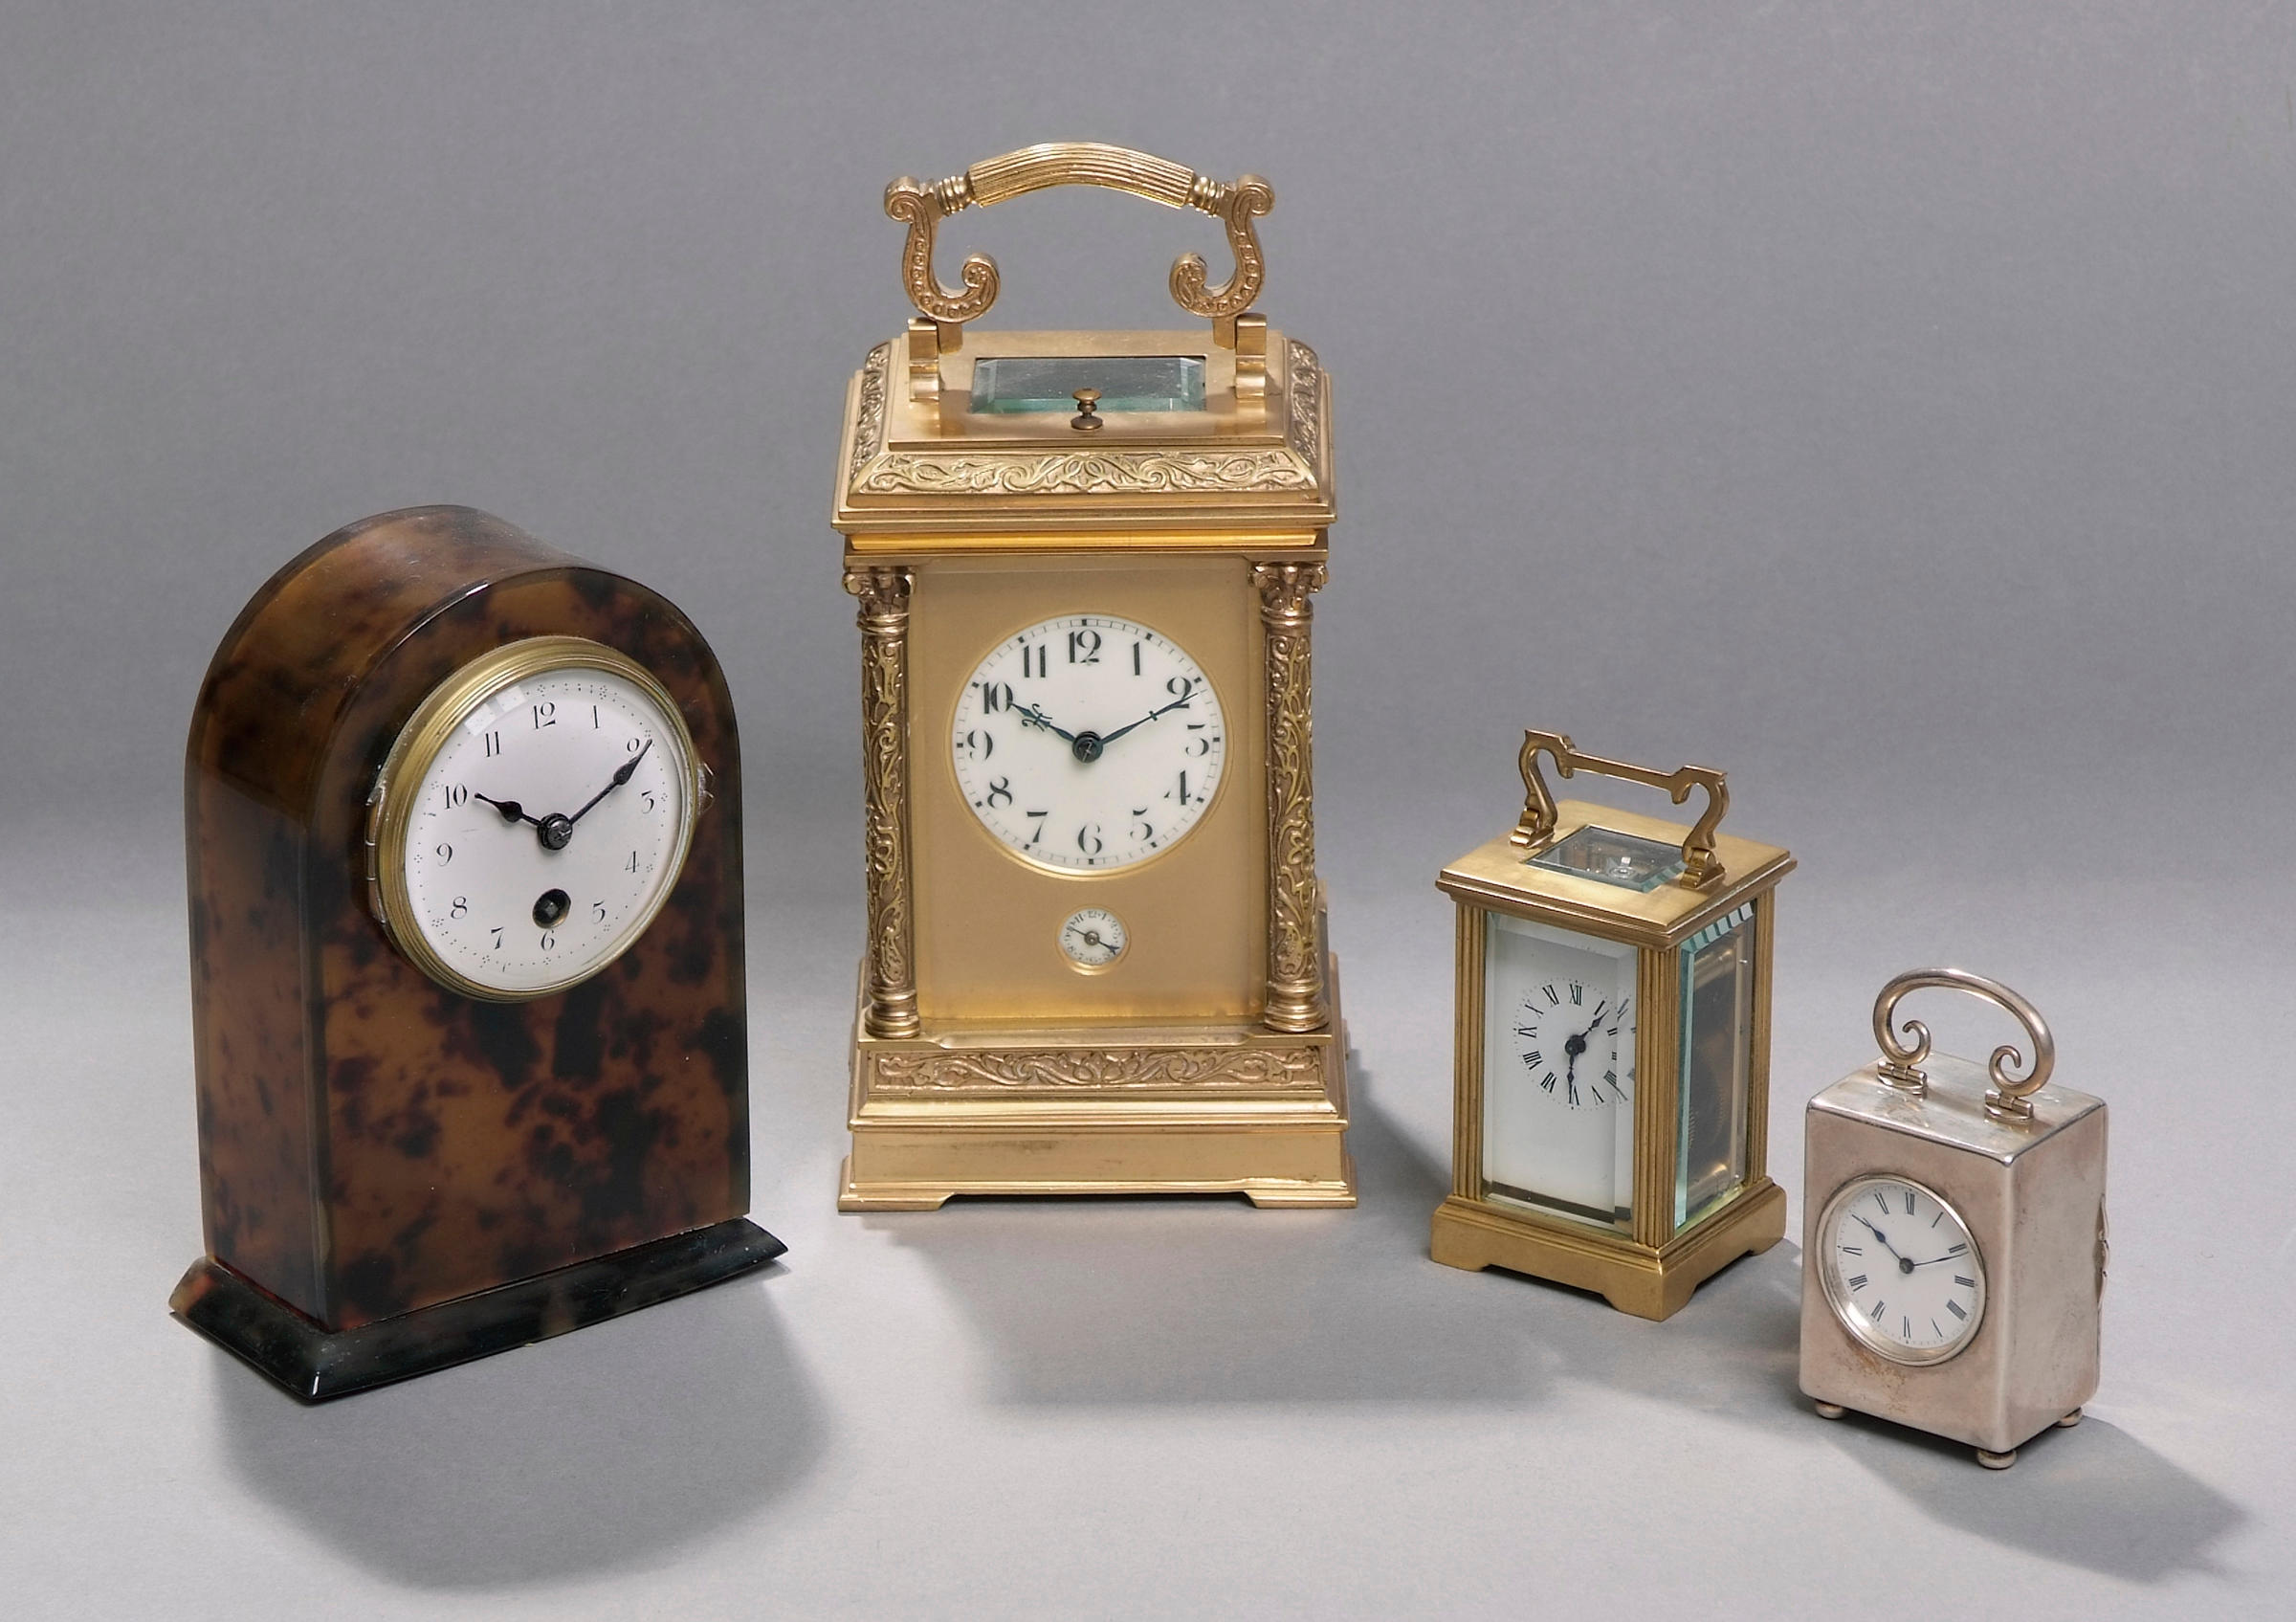 A miniature silver cased carriage timepiece